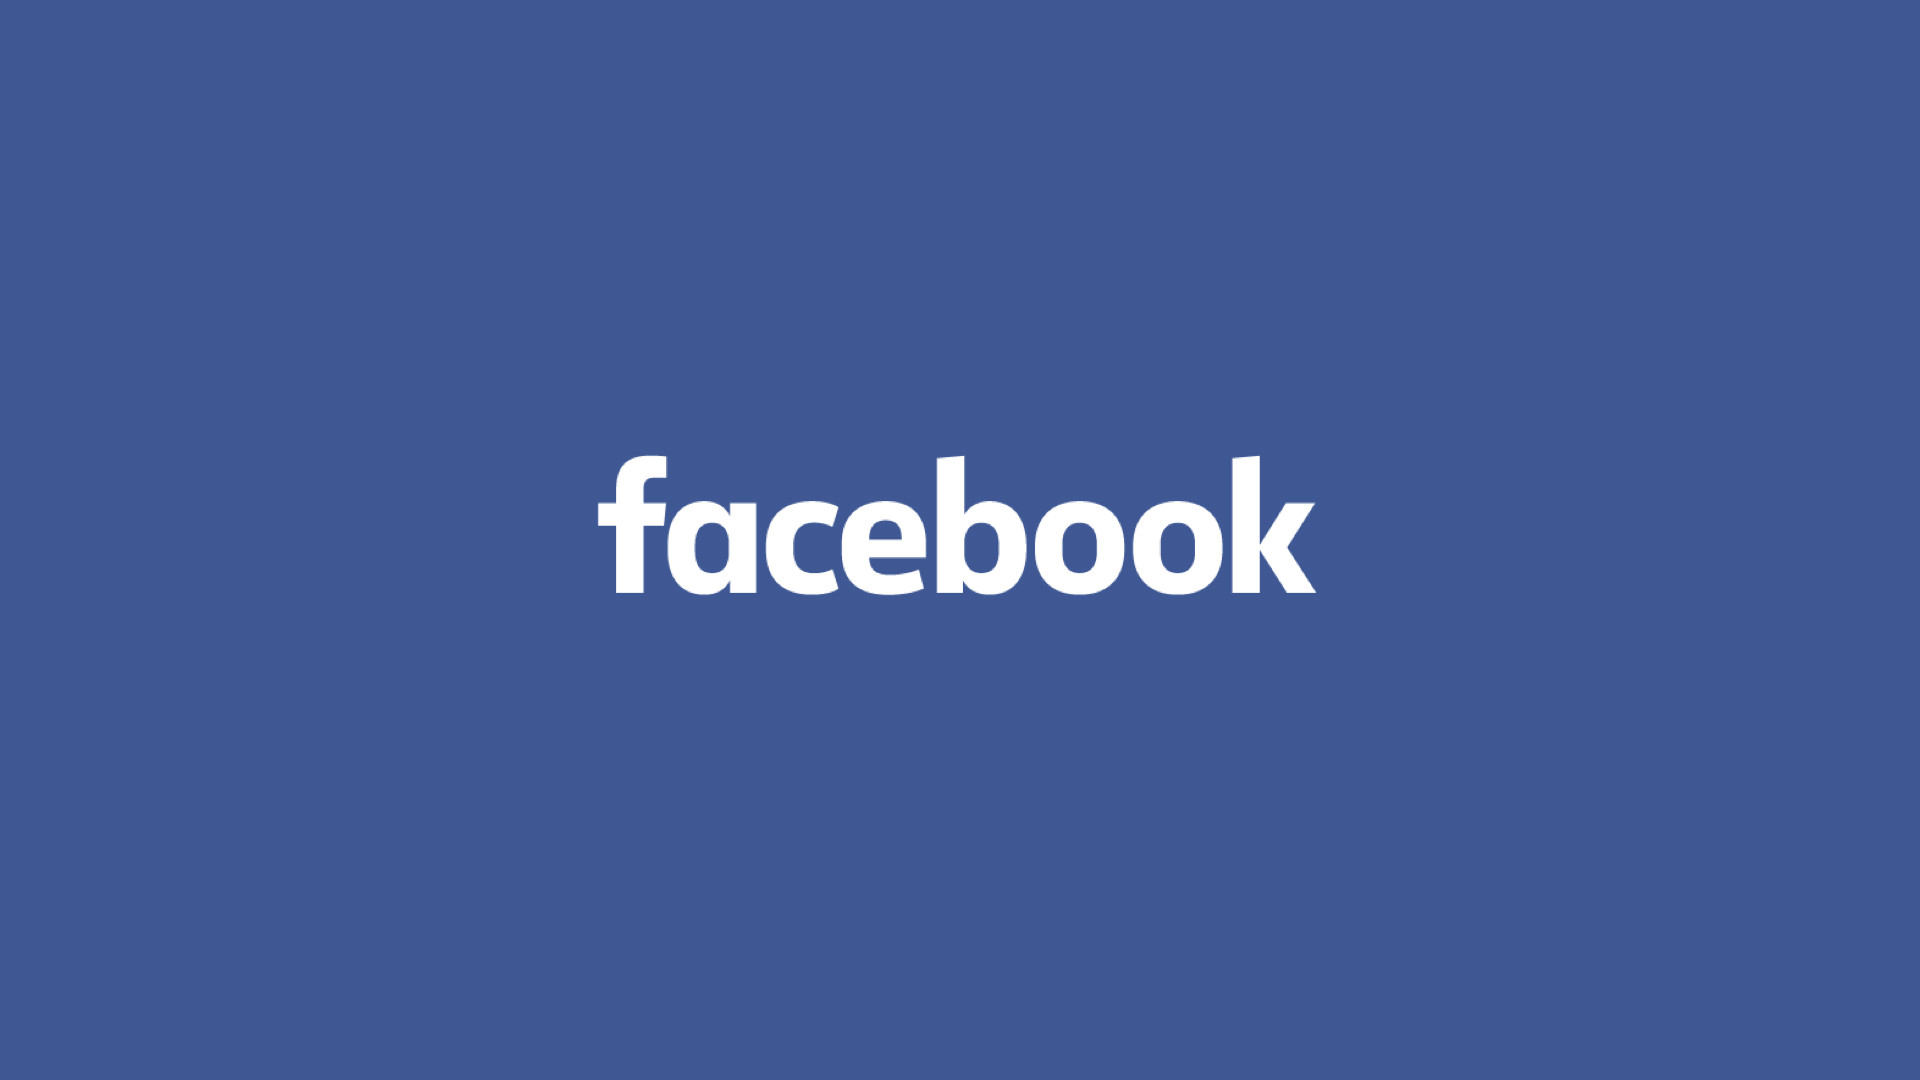 Facebook Introduces 'Quiet Mode' And Other Features